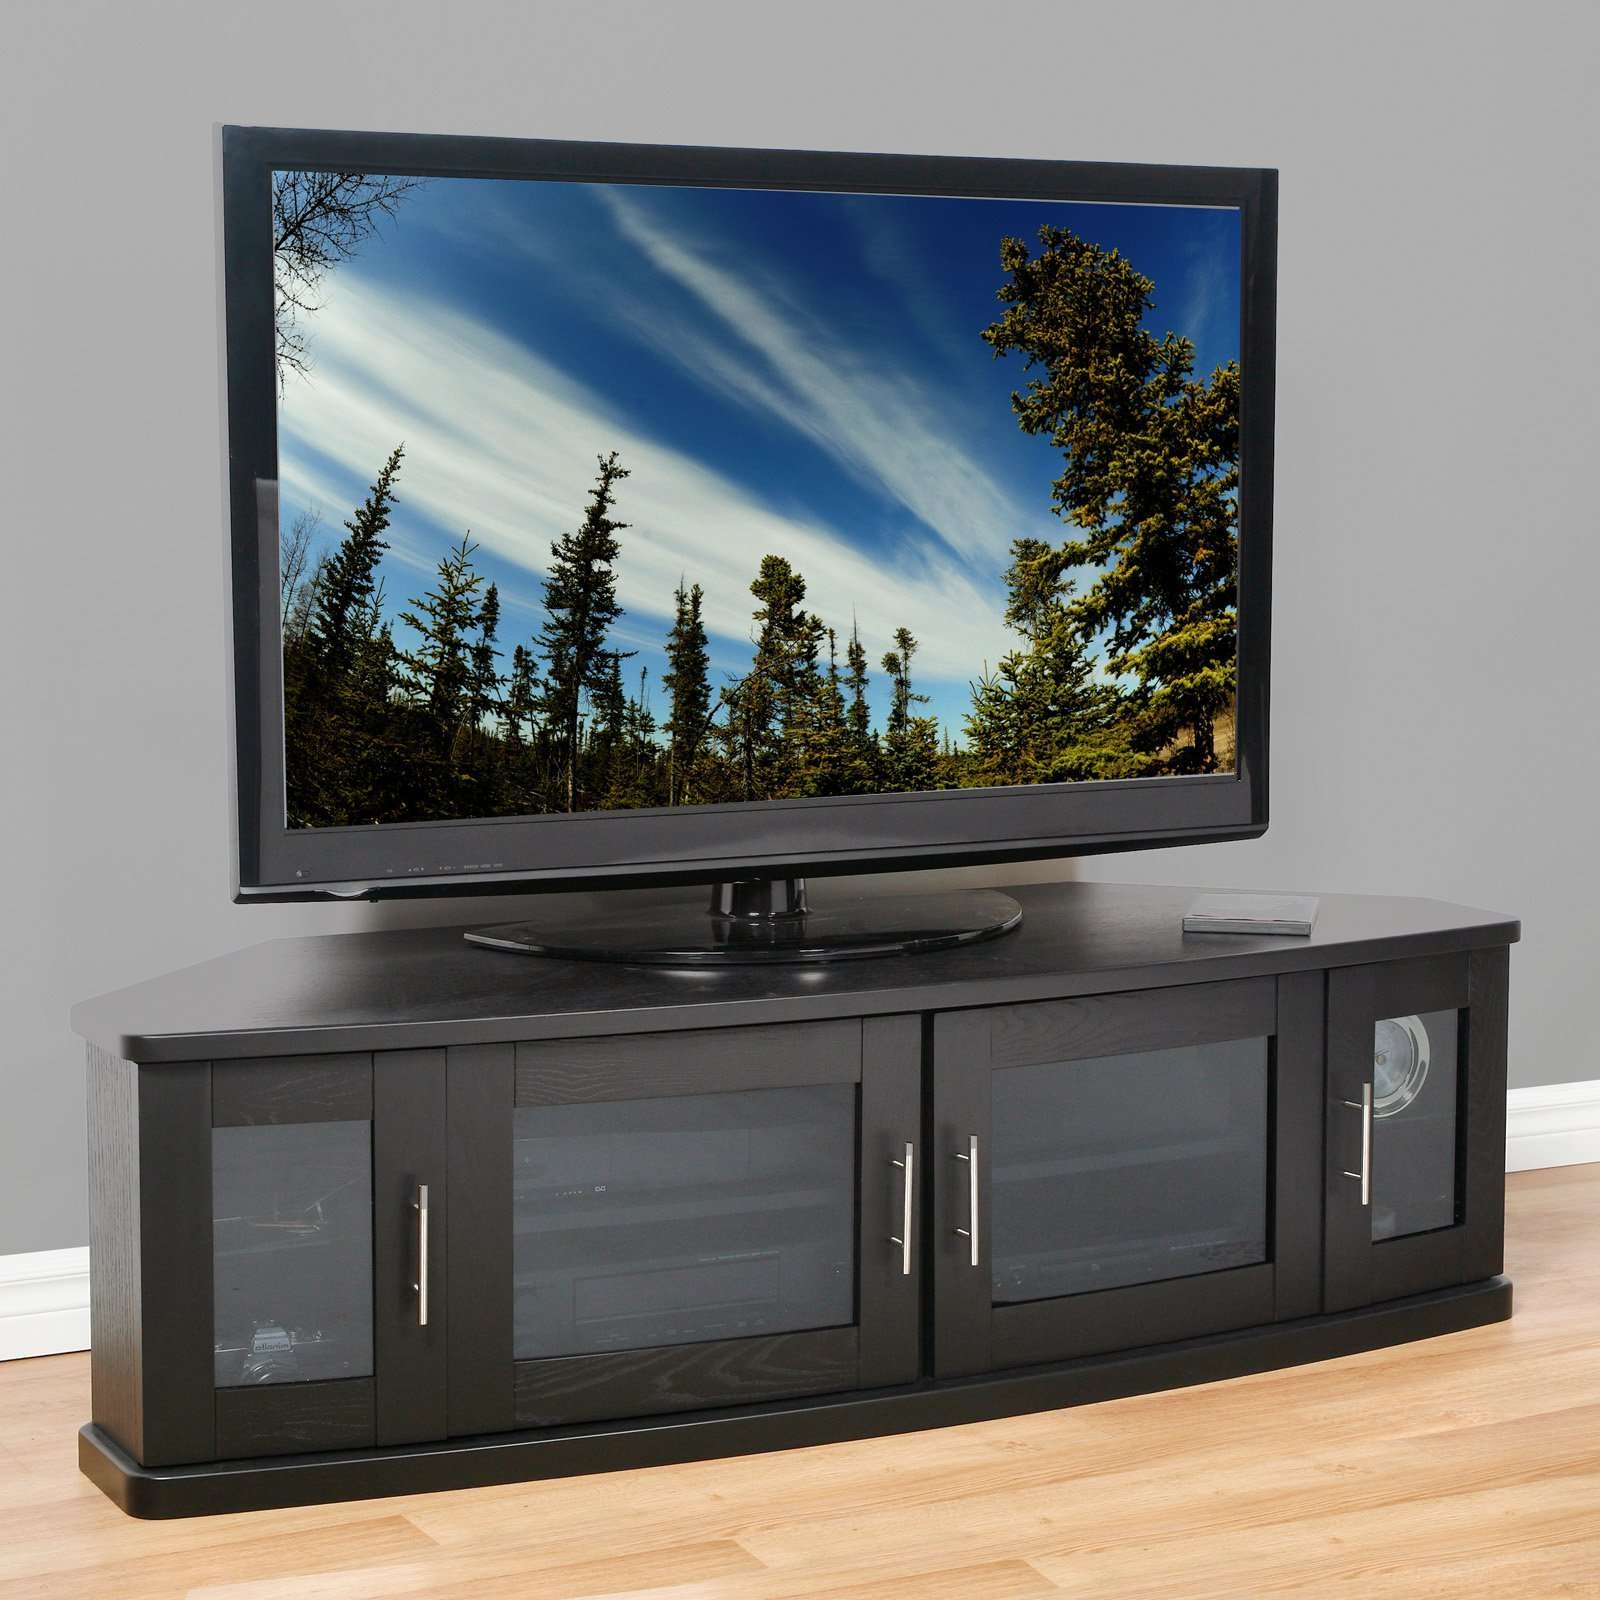 Plateau Newport 62 Inch Corner Tv Stand In Black – Walmart Pertaining To Corner Tv Cabinets For Flat Screen (View 16 of 20)